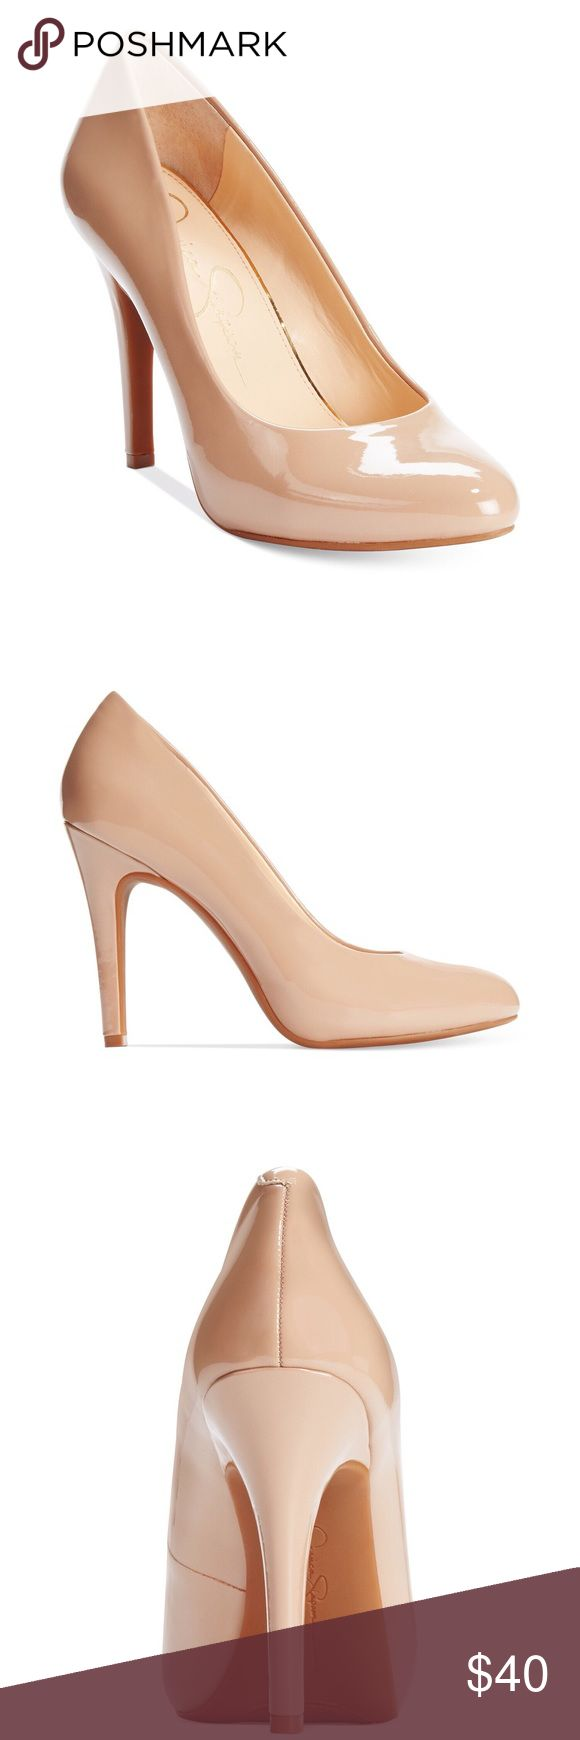 1000  ideas about Nude Pumps on Pinterest | Nude high heels Nude